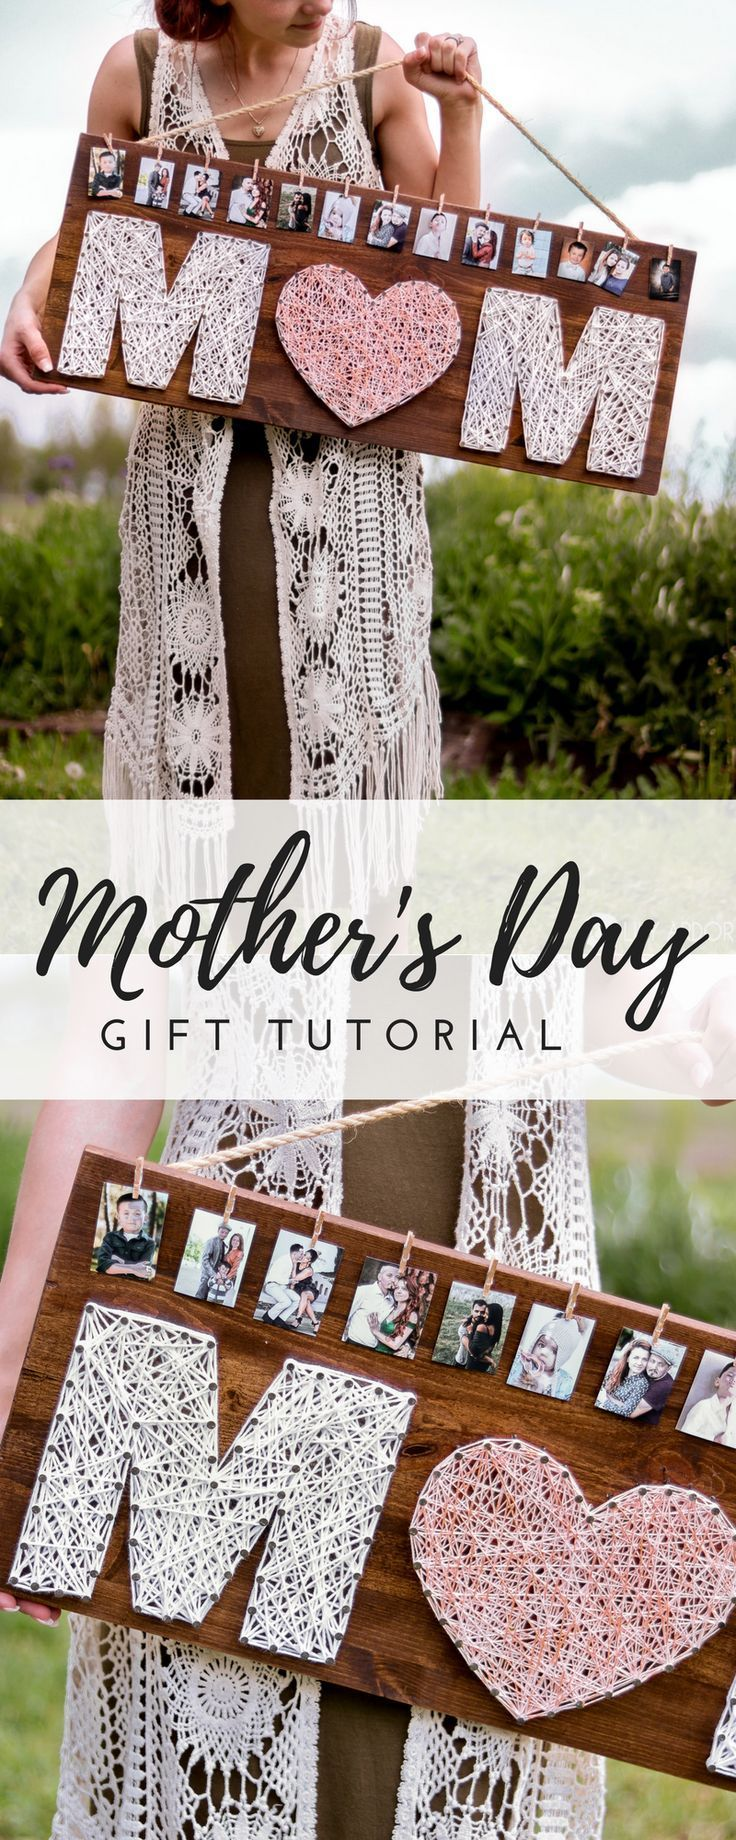 This Mother's day gift is one the perfect combination of love and memories!